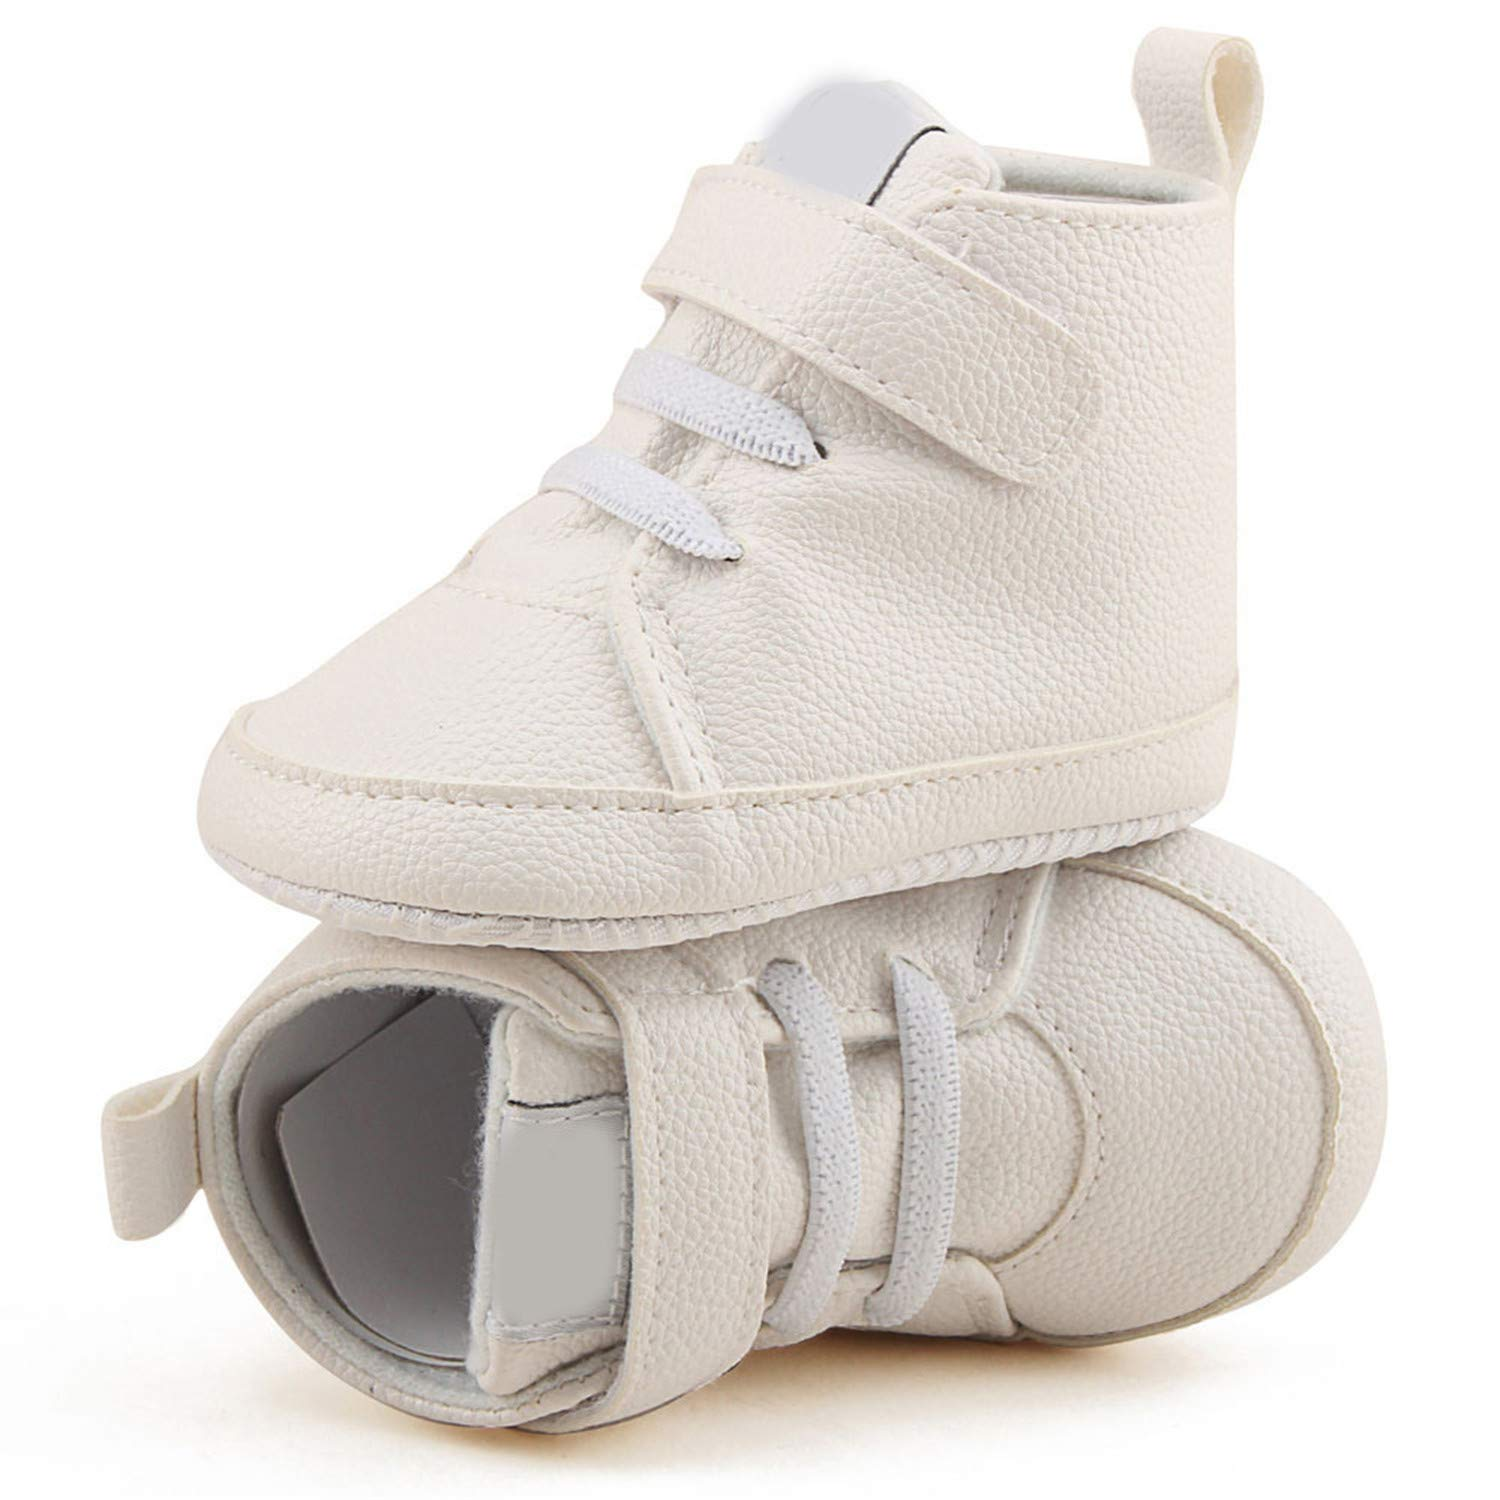 Baby Infant Shoes Girls Boys Crib Prewalker Boots Sneakers Snow Newborn Toddler First Walker